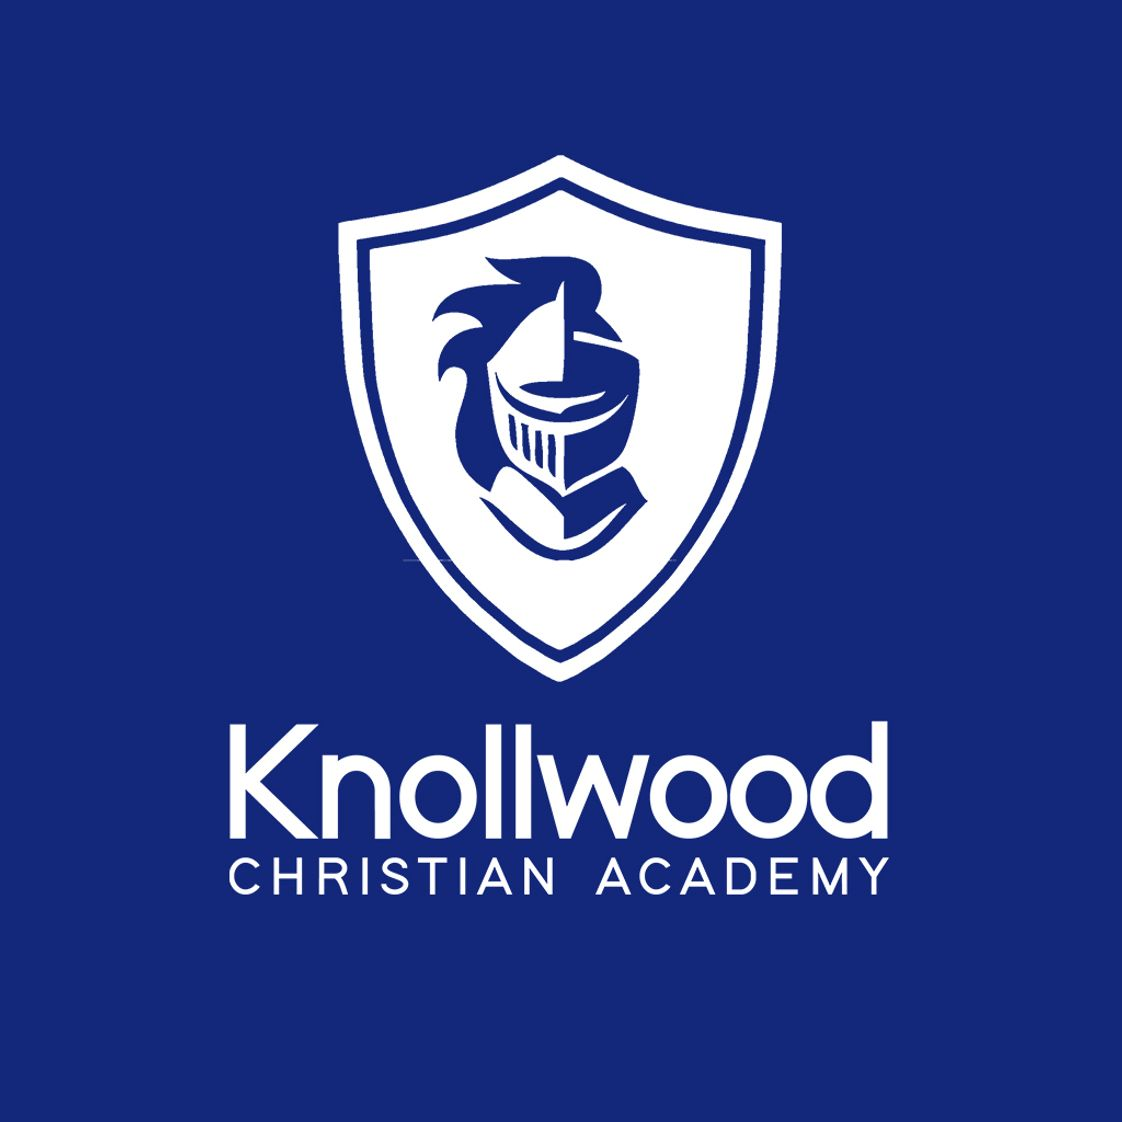 Knollwood Christian Academy Photo #1 - Knollwood Christian Academy | Mobile, AL